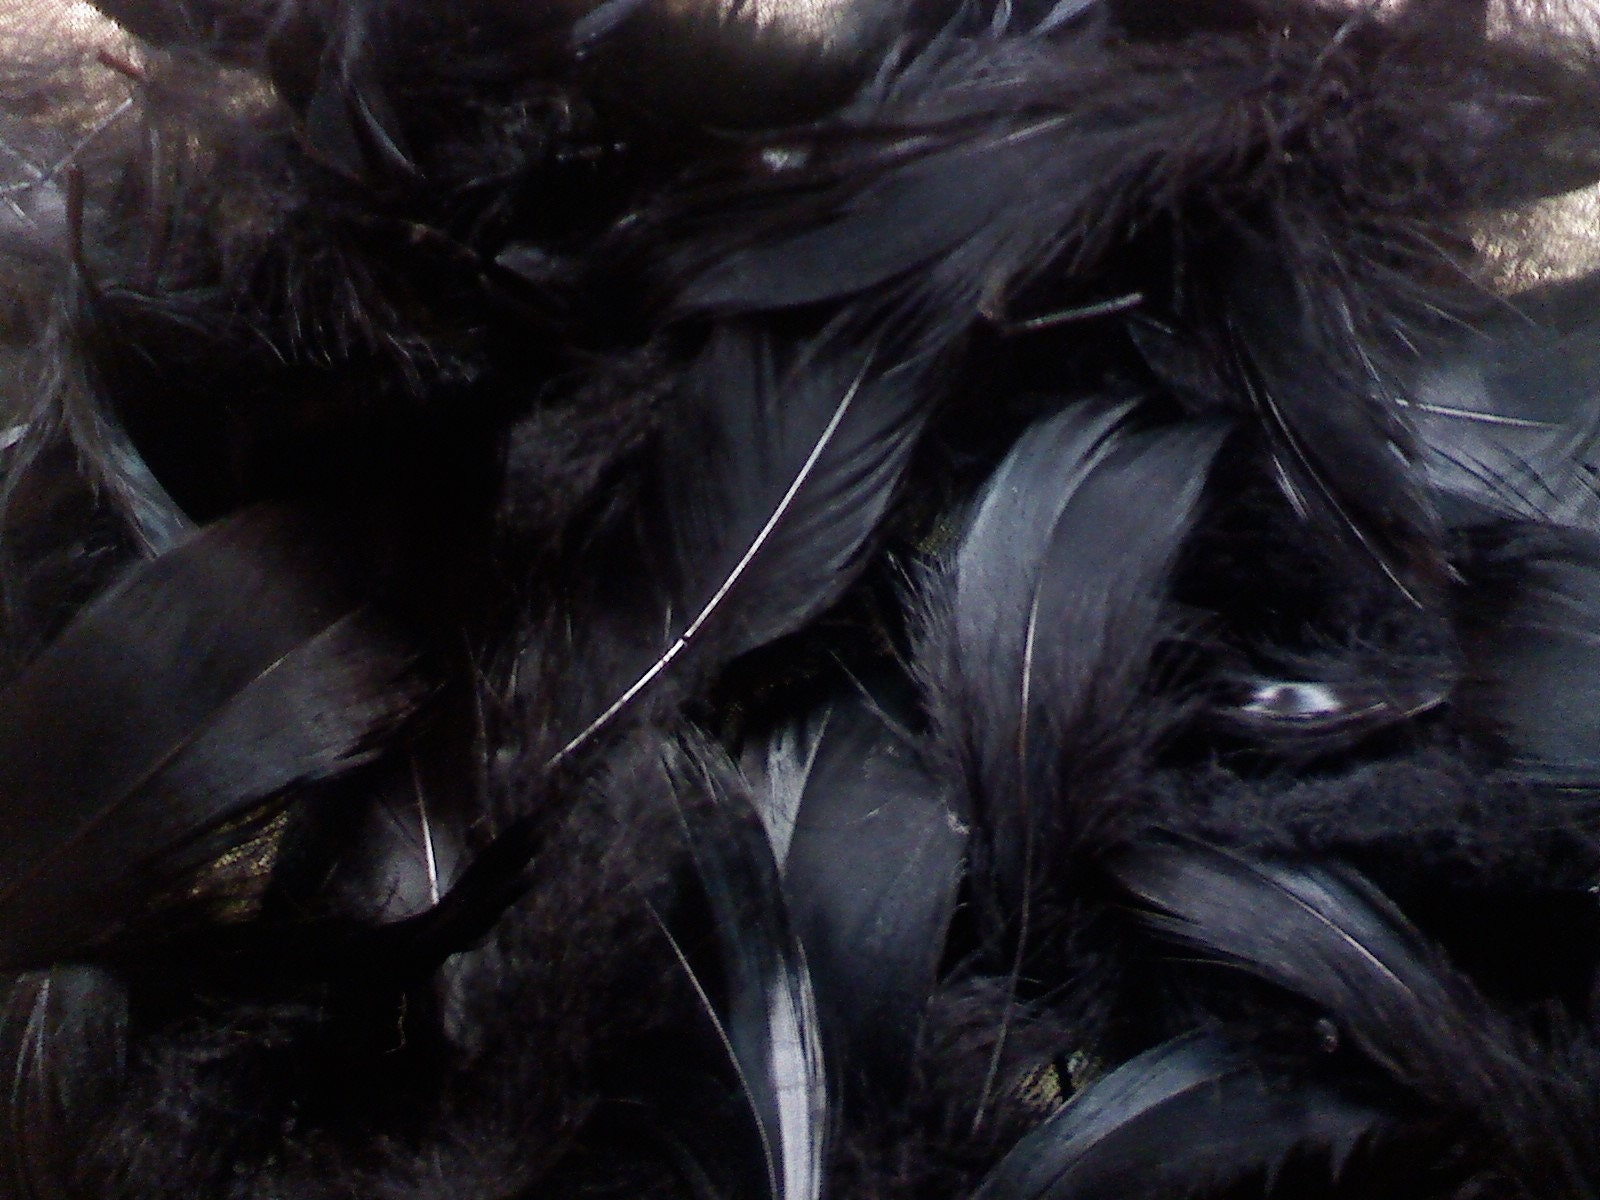 50 black feathers